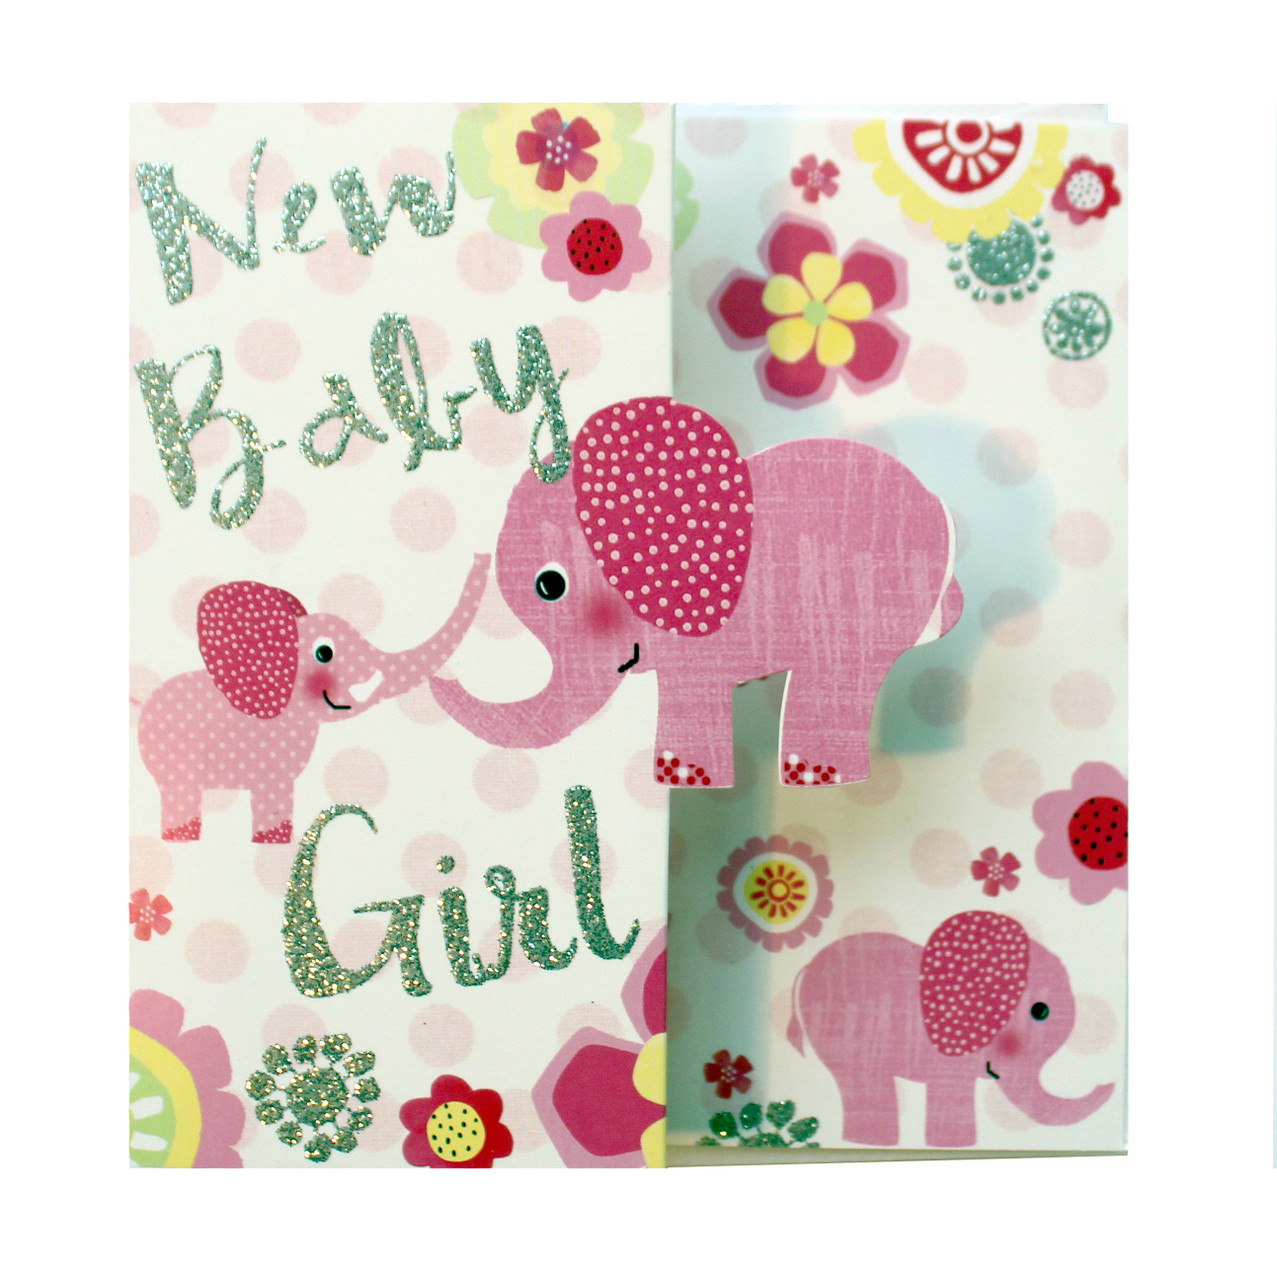 New baby girl greetings card peel cards present company new baby girl greetings card kristyandbryce Images